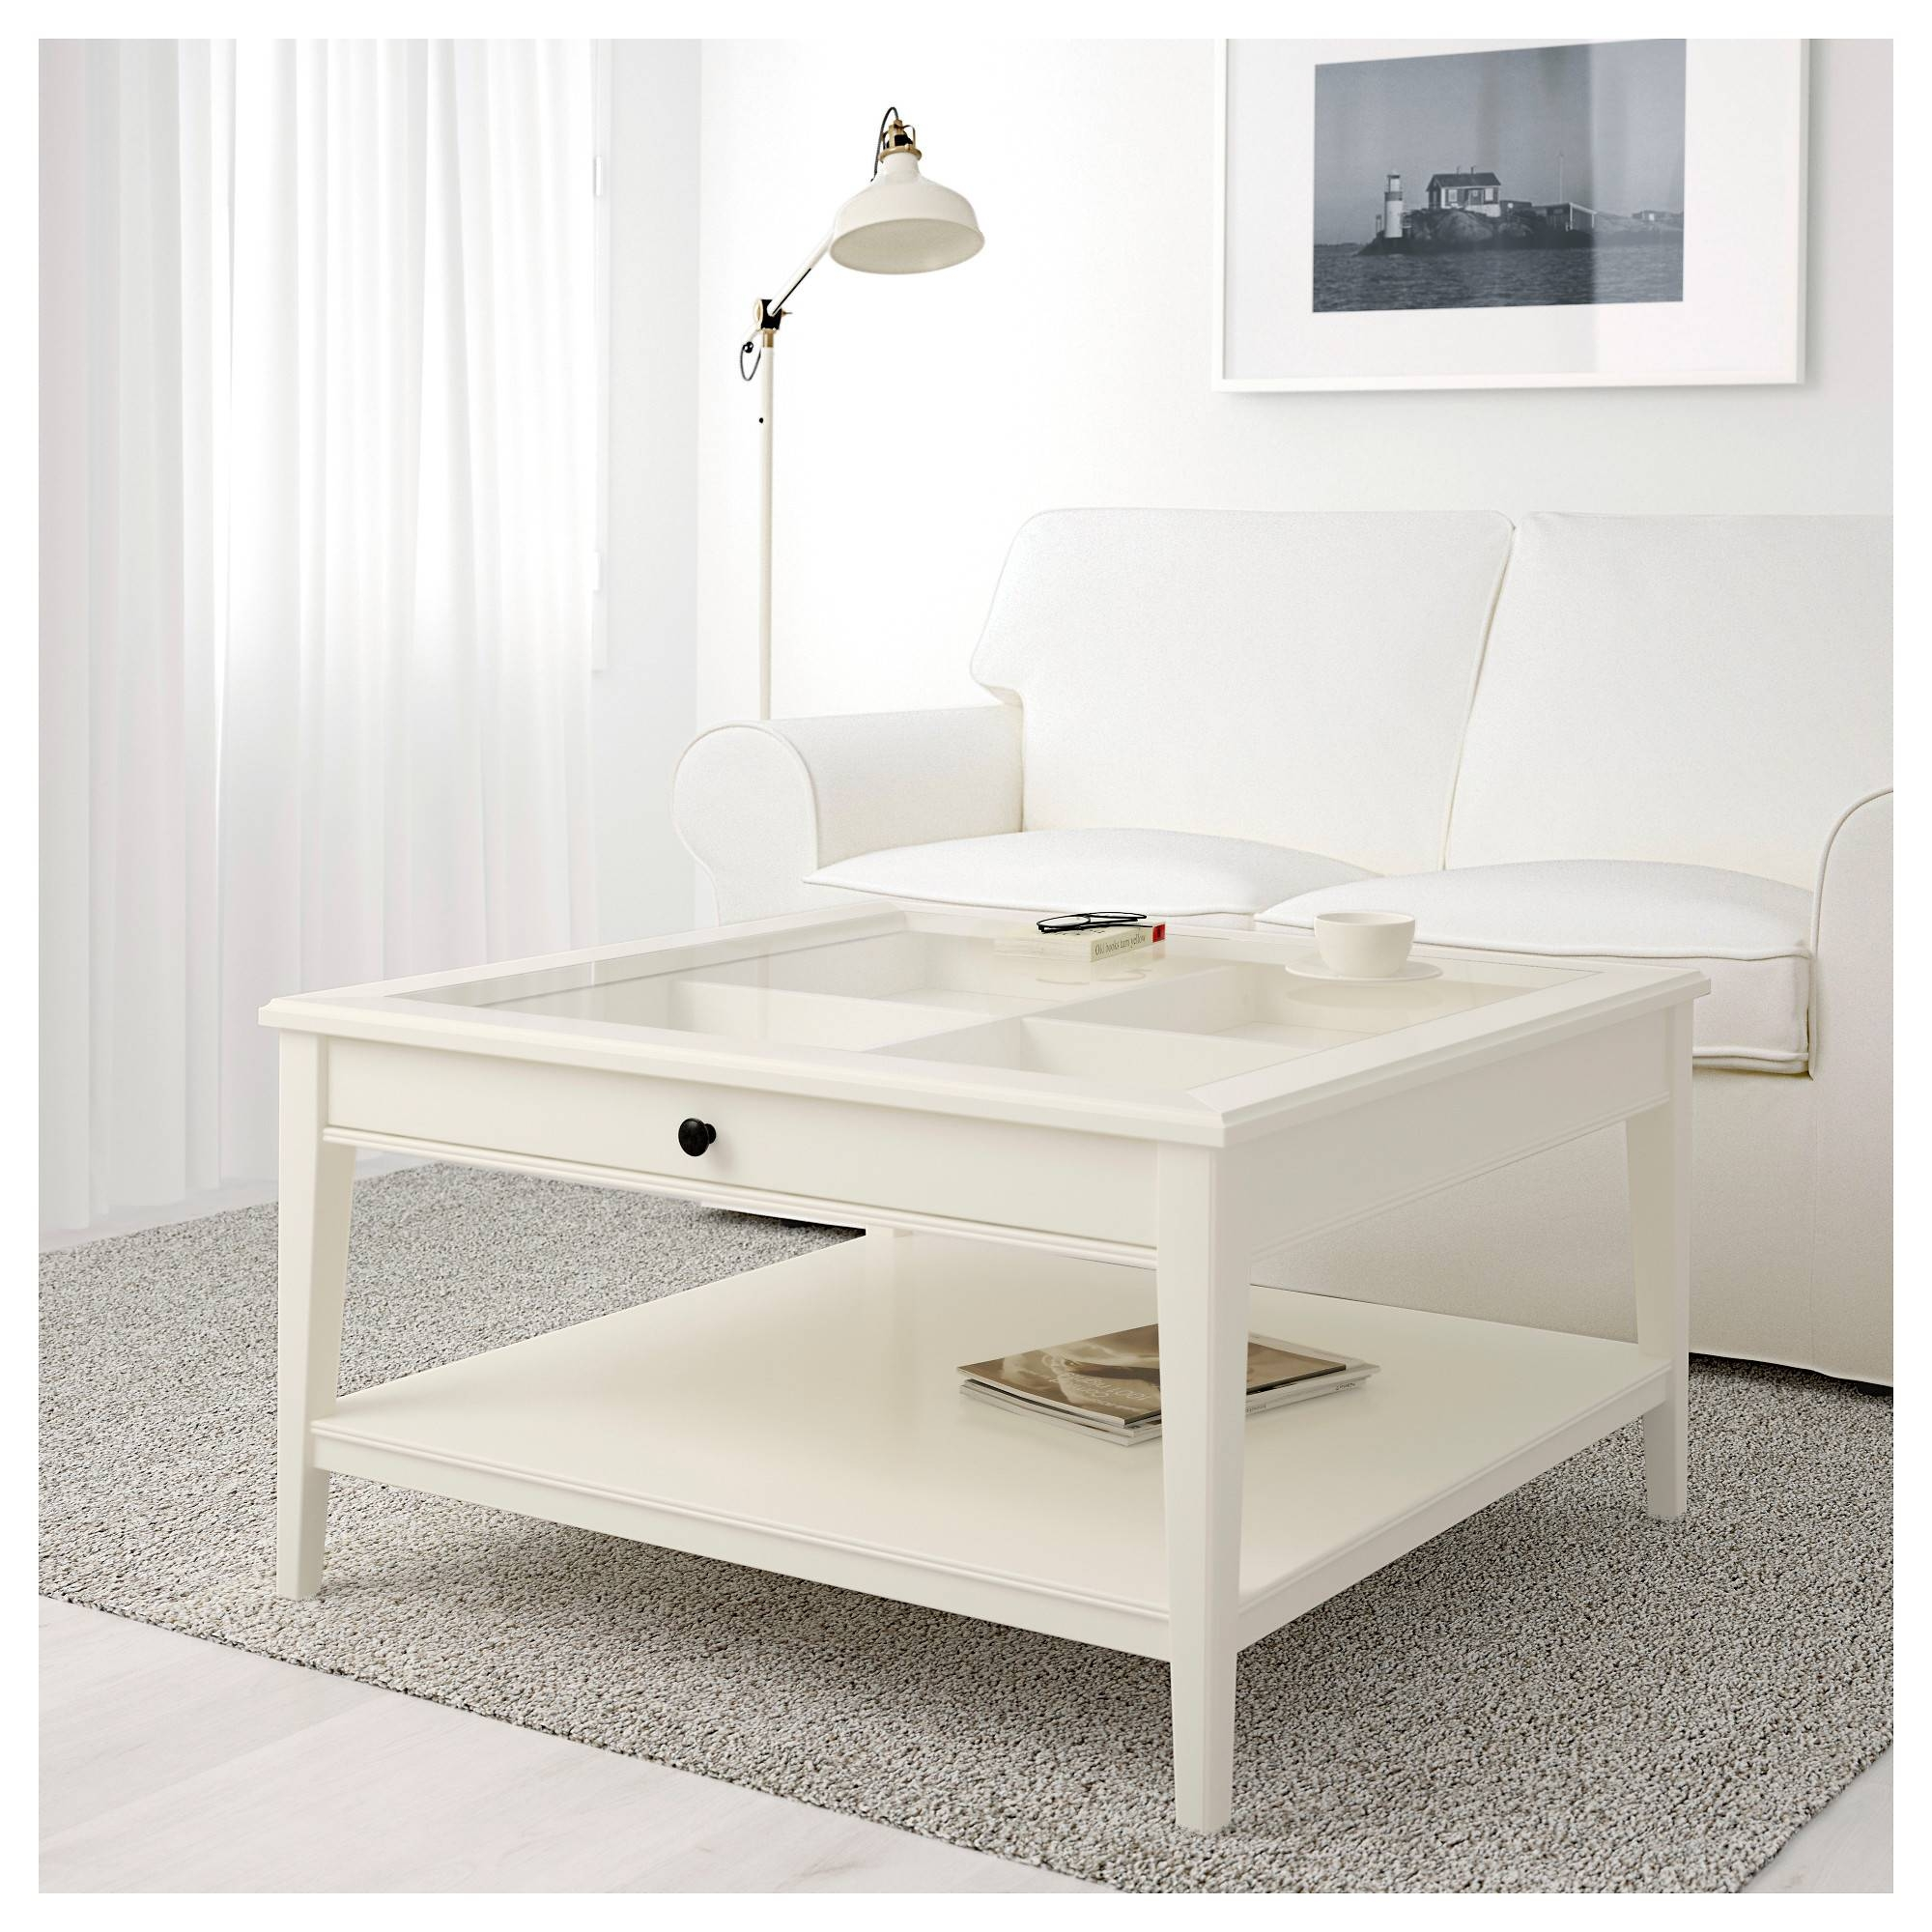 Liatorp Coffee Table - White/glass - Ikea intended for Glass Coffee Tables With Storage (Image 25 of 30)